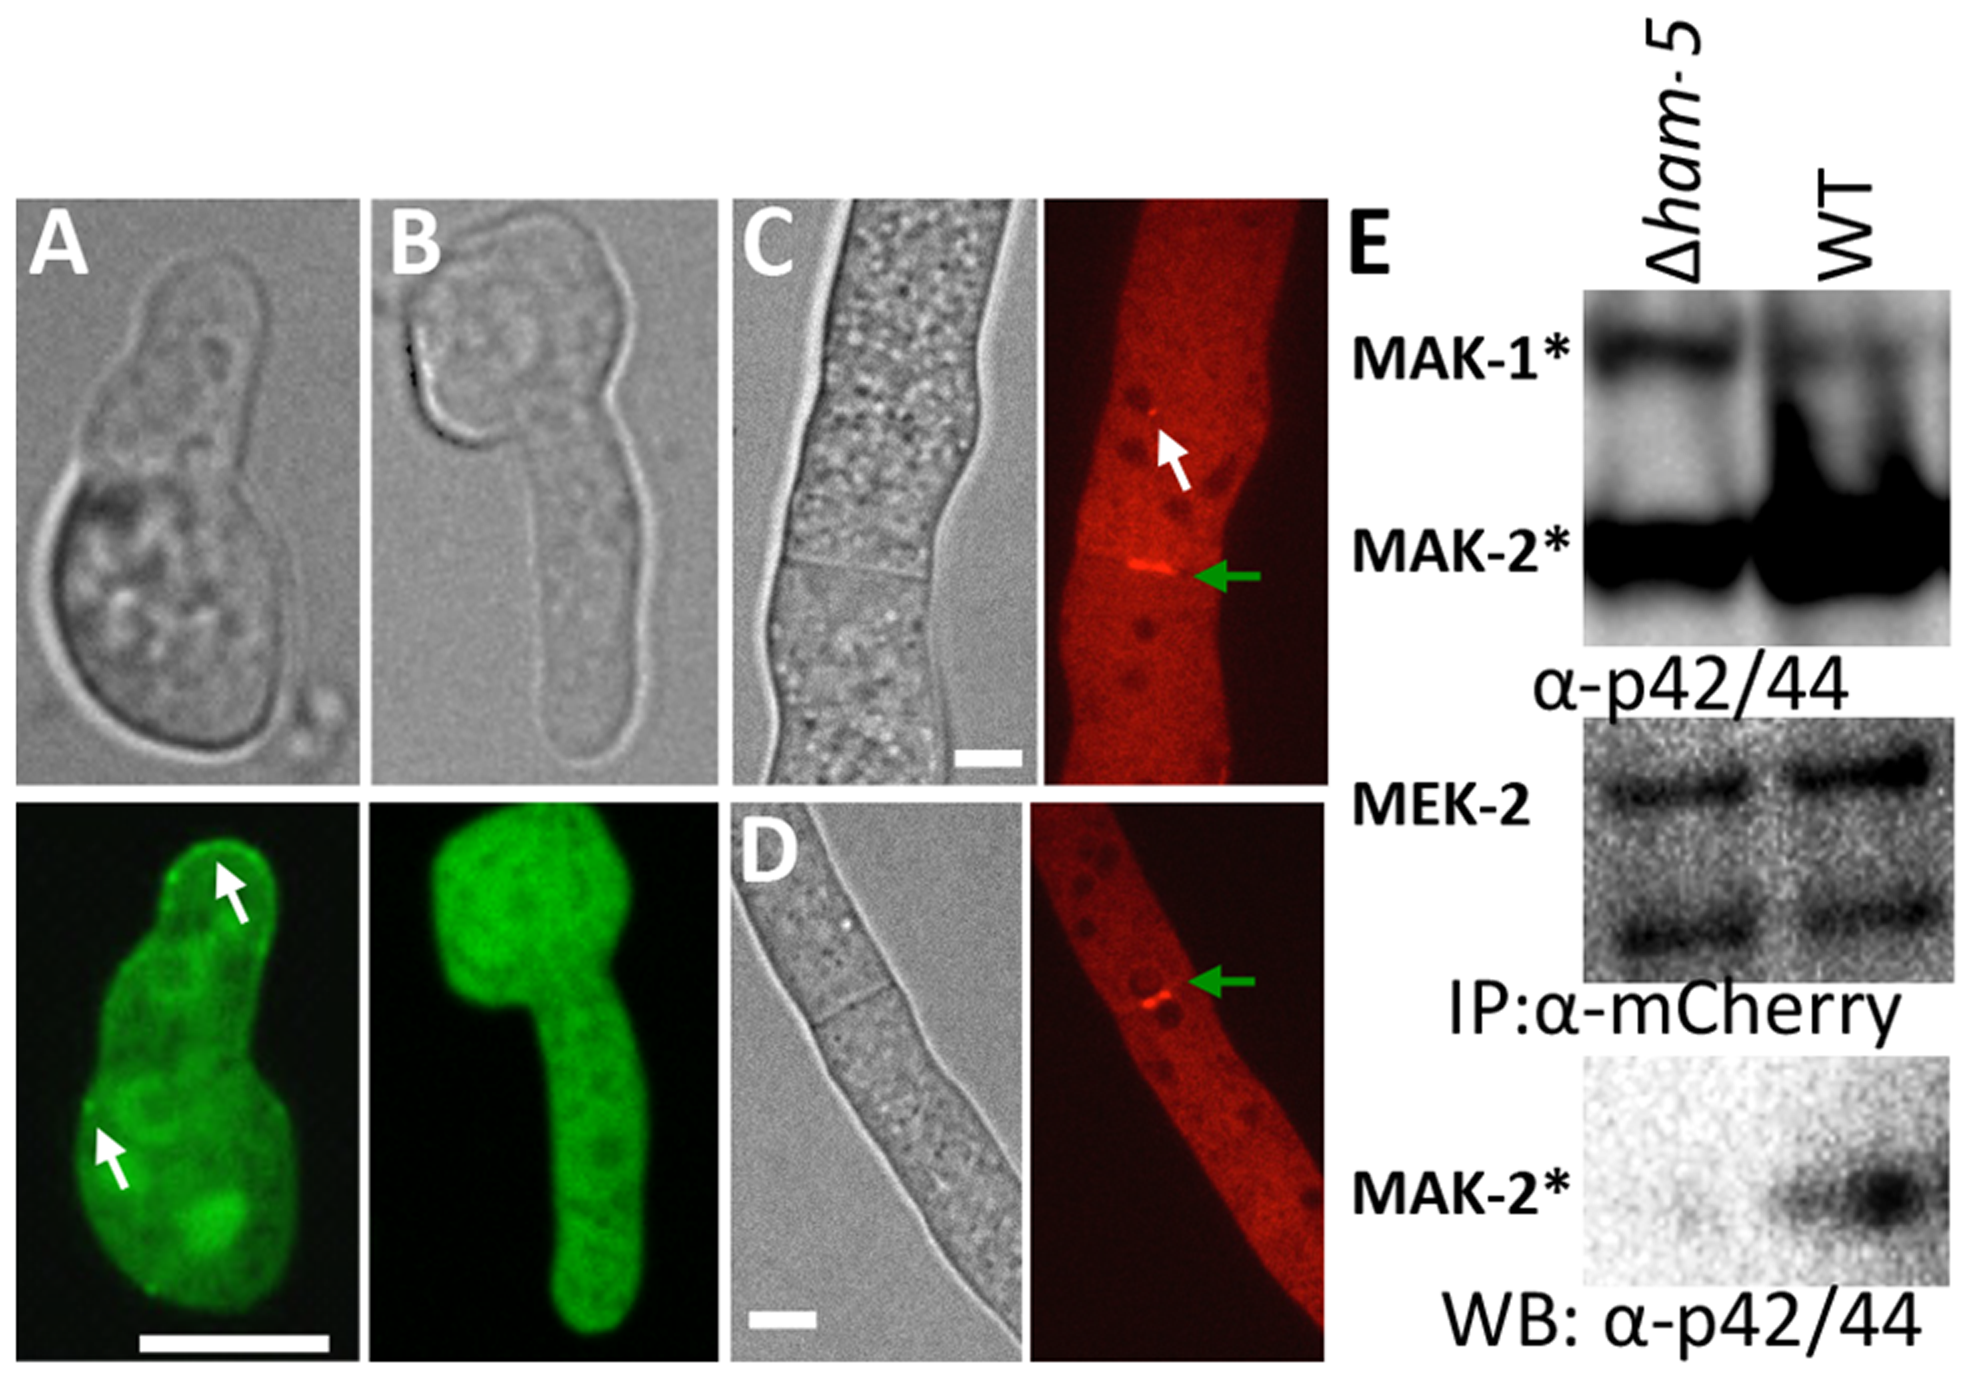 HAM-5 is required to localize MAK-2 and MEK-2 to puncta.